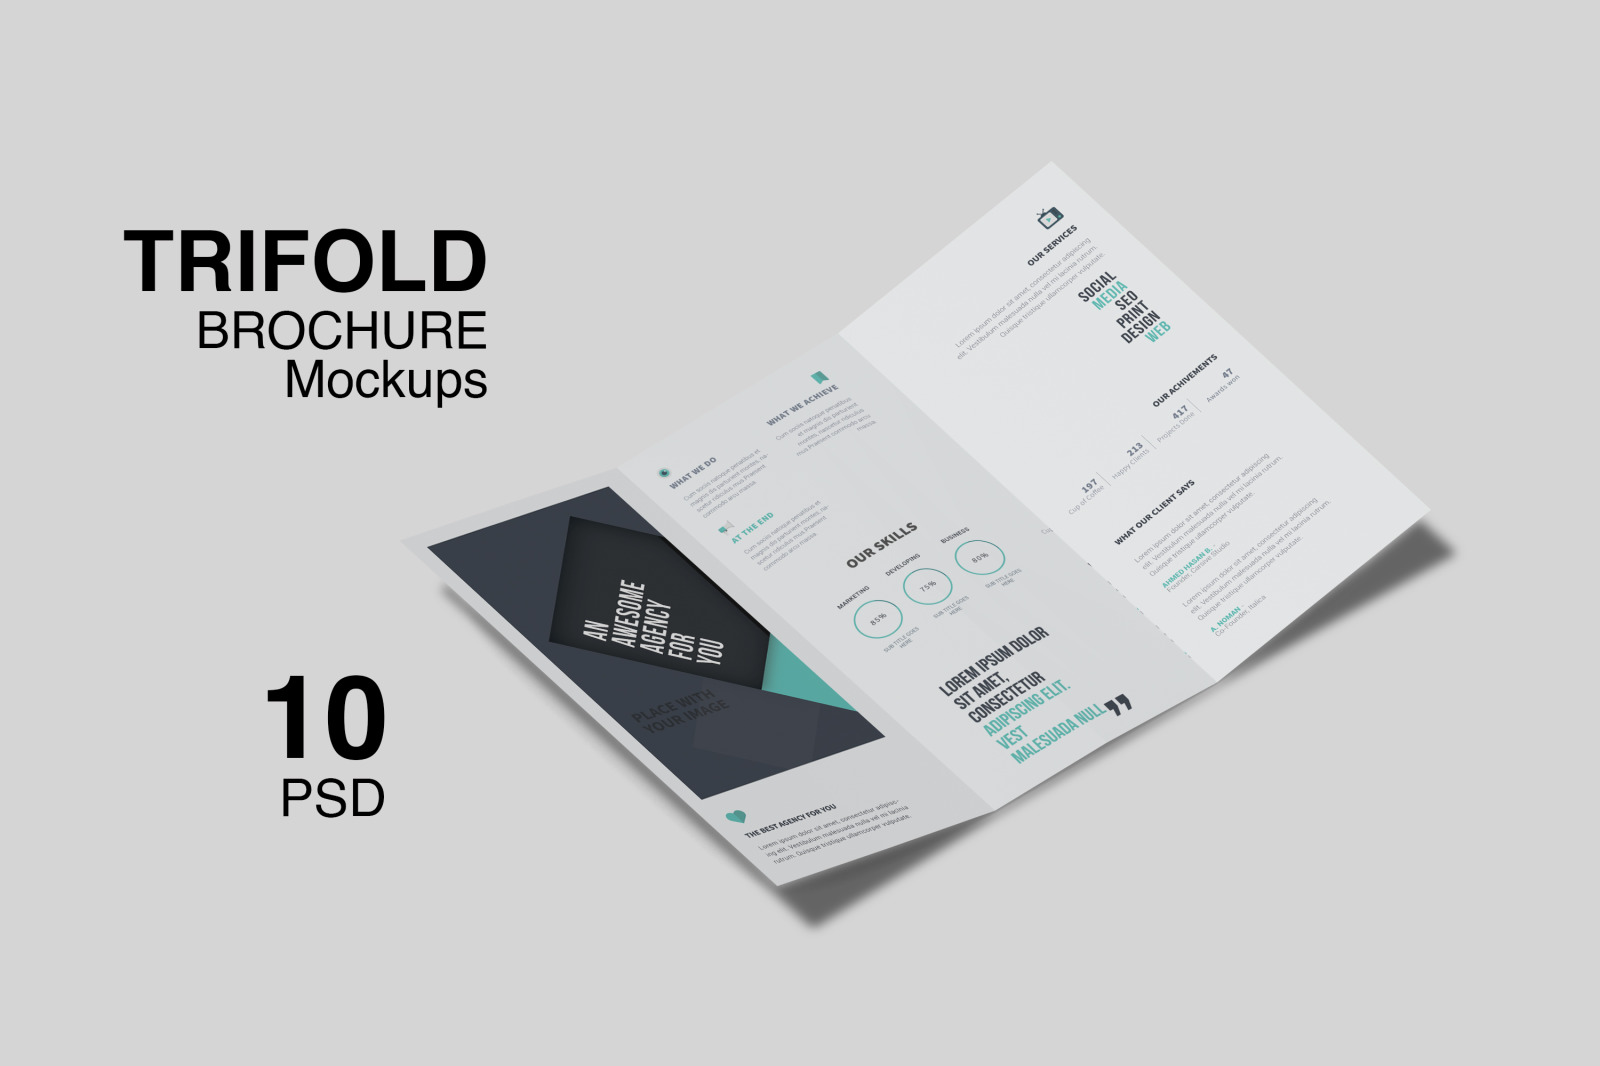 Trifold Brochure Mockup For Business In Stationery Mockups On